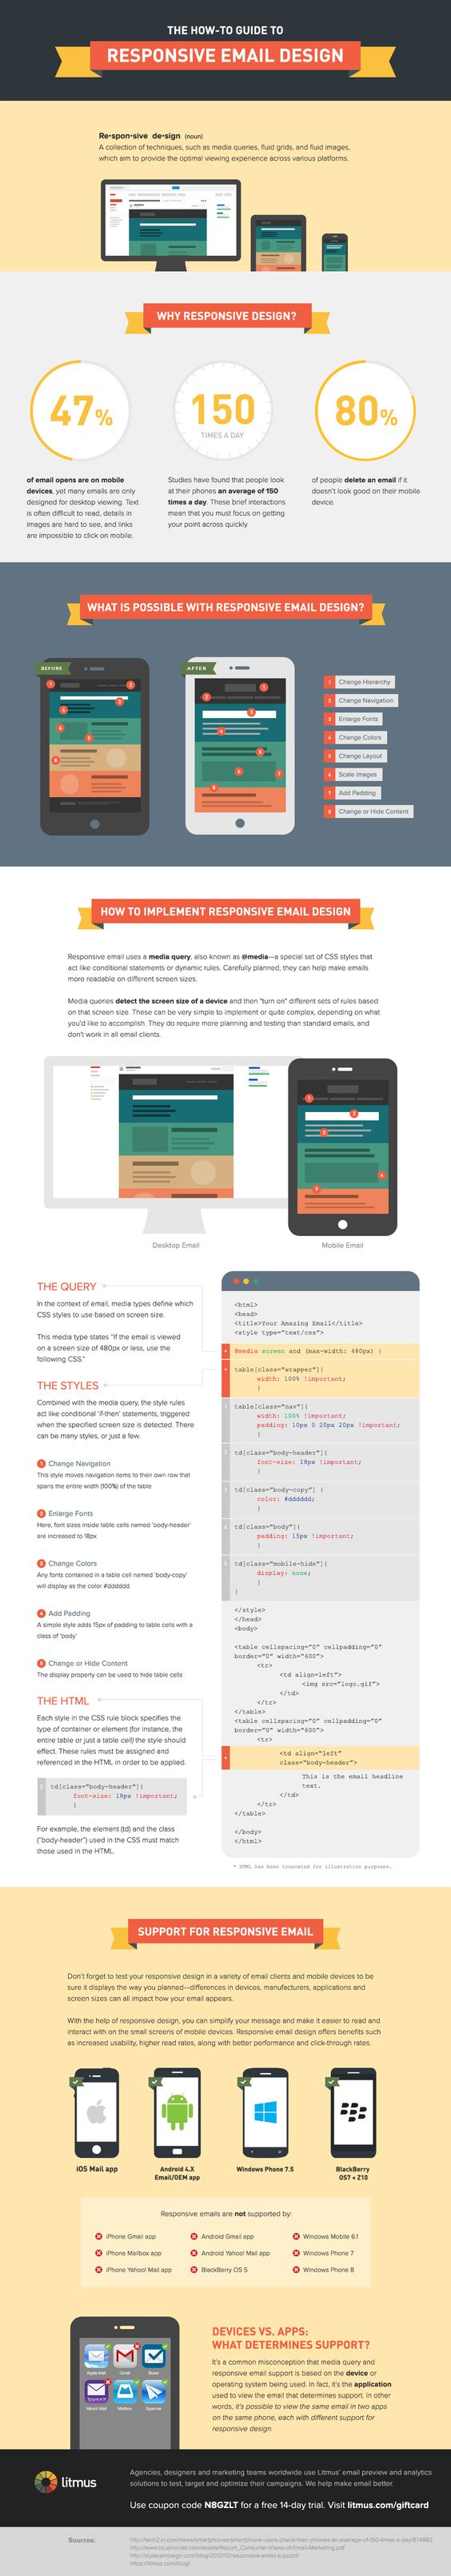 the-howto-guide-to-responsive-email-design_522def304c931